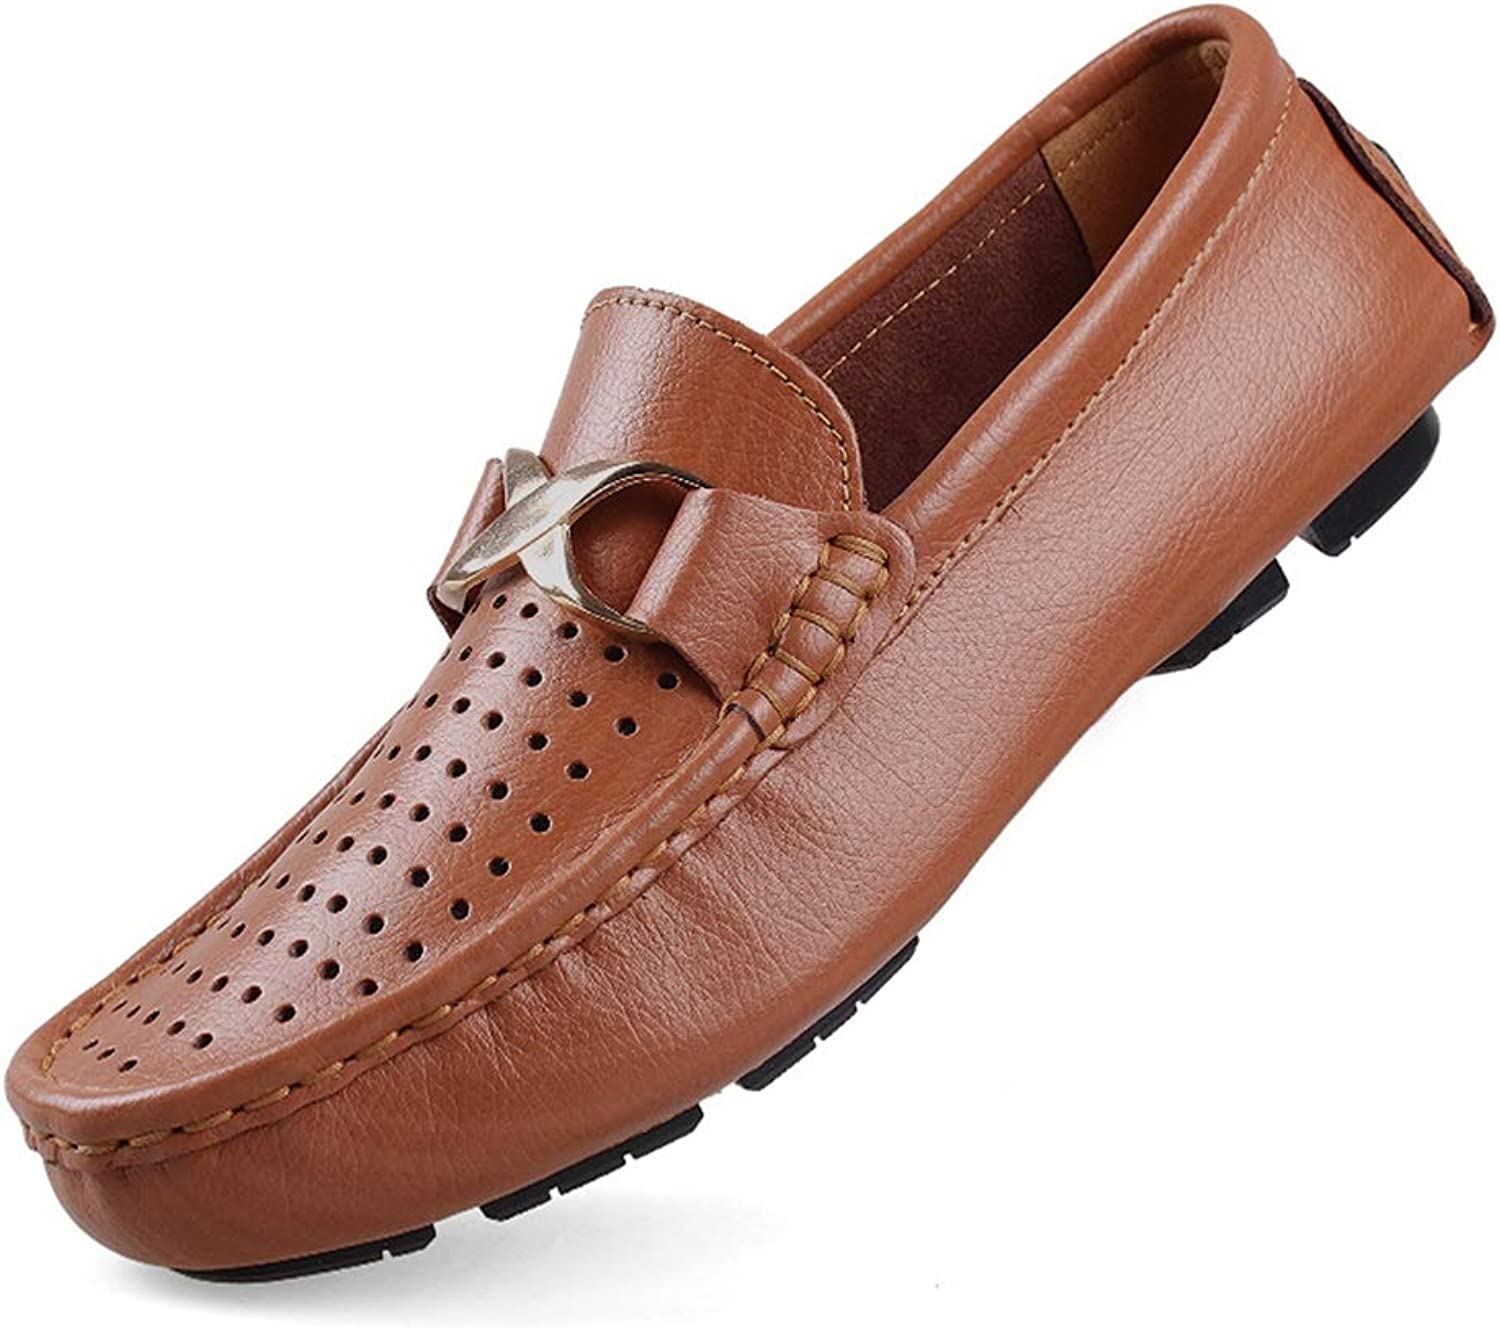 Oxford shoes Mens Formal Slip On PU Leather shoes Round Toe Low Top Big Size Breathable Hollow Vamp Cricket shoes